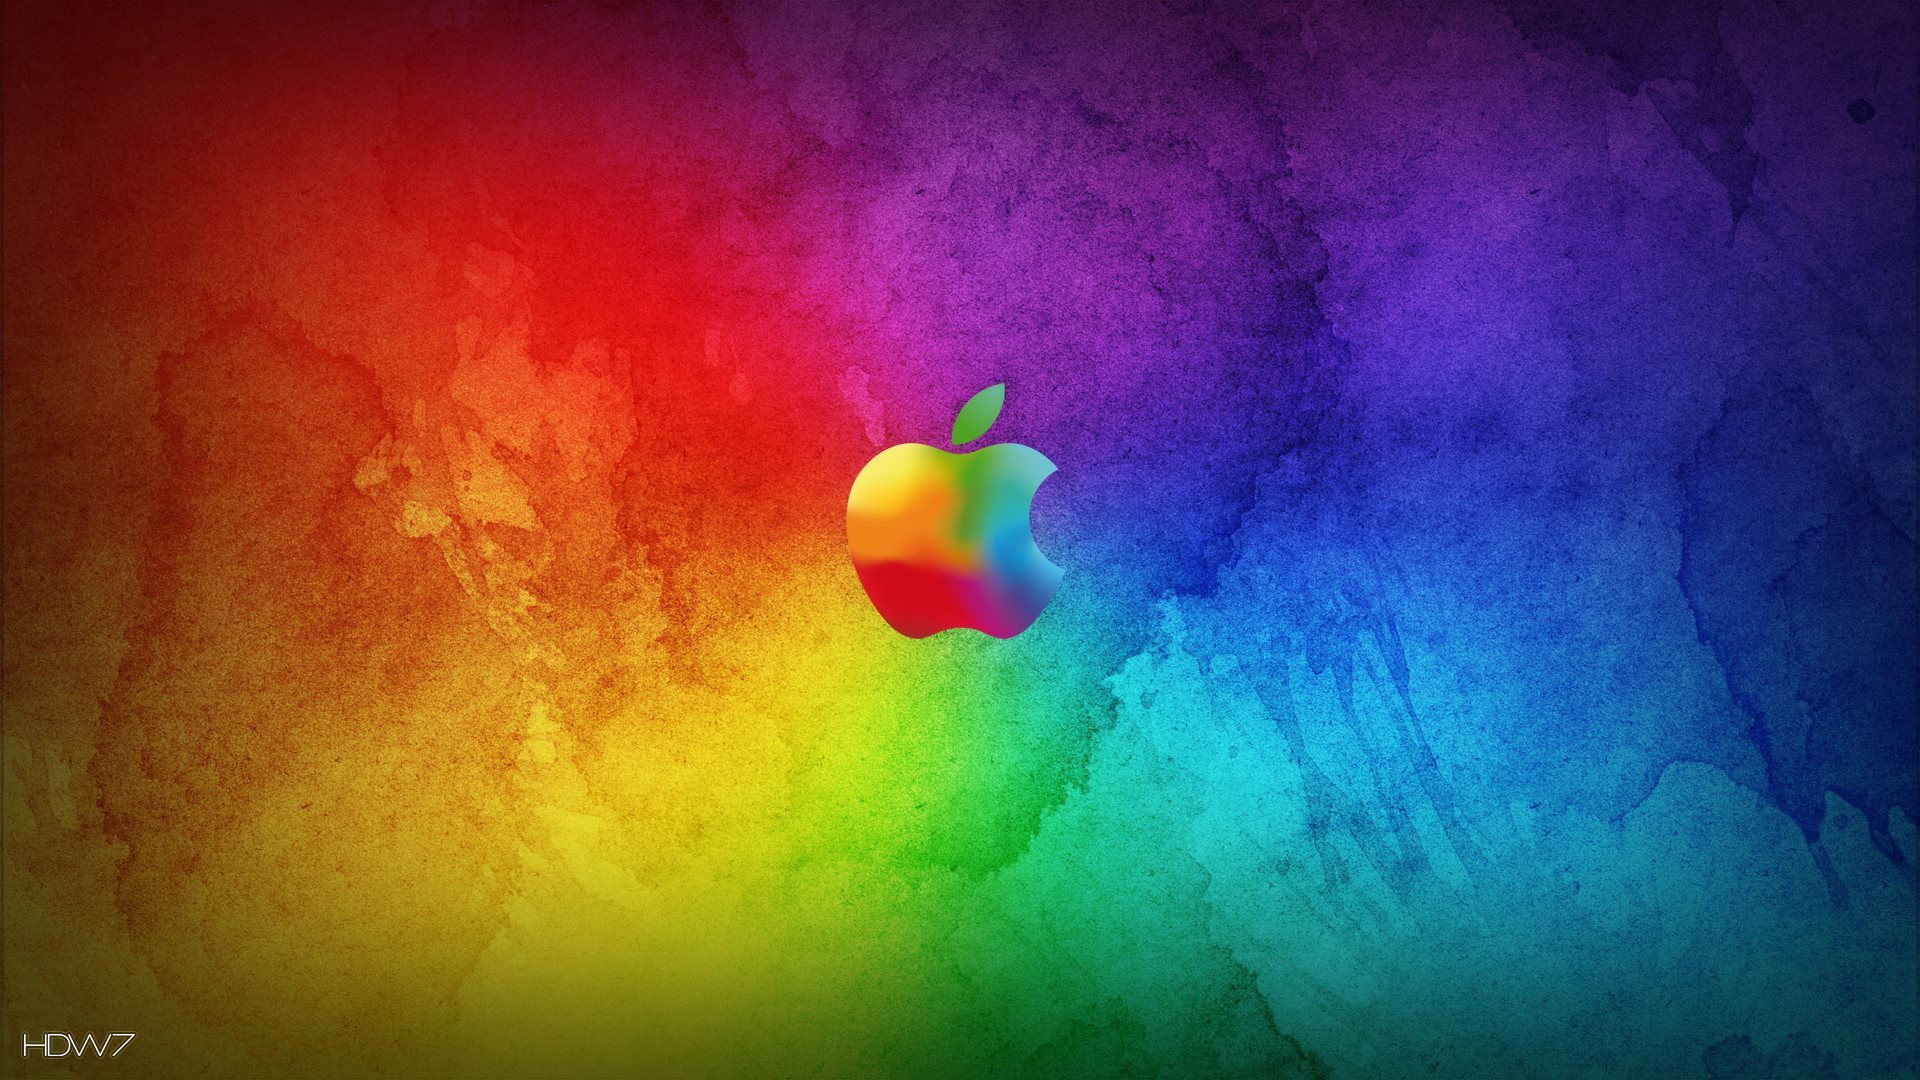 rainbow apple desktop wallpapers hd | hd wallpaper gallery #7